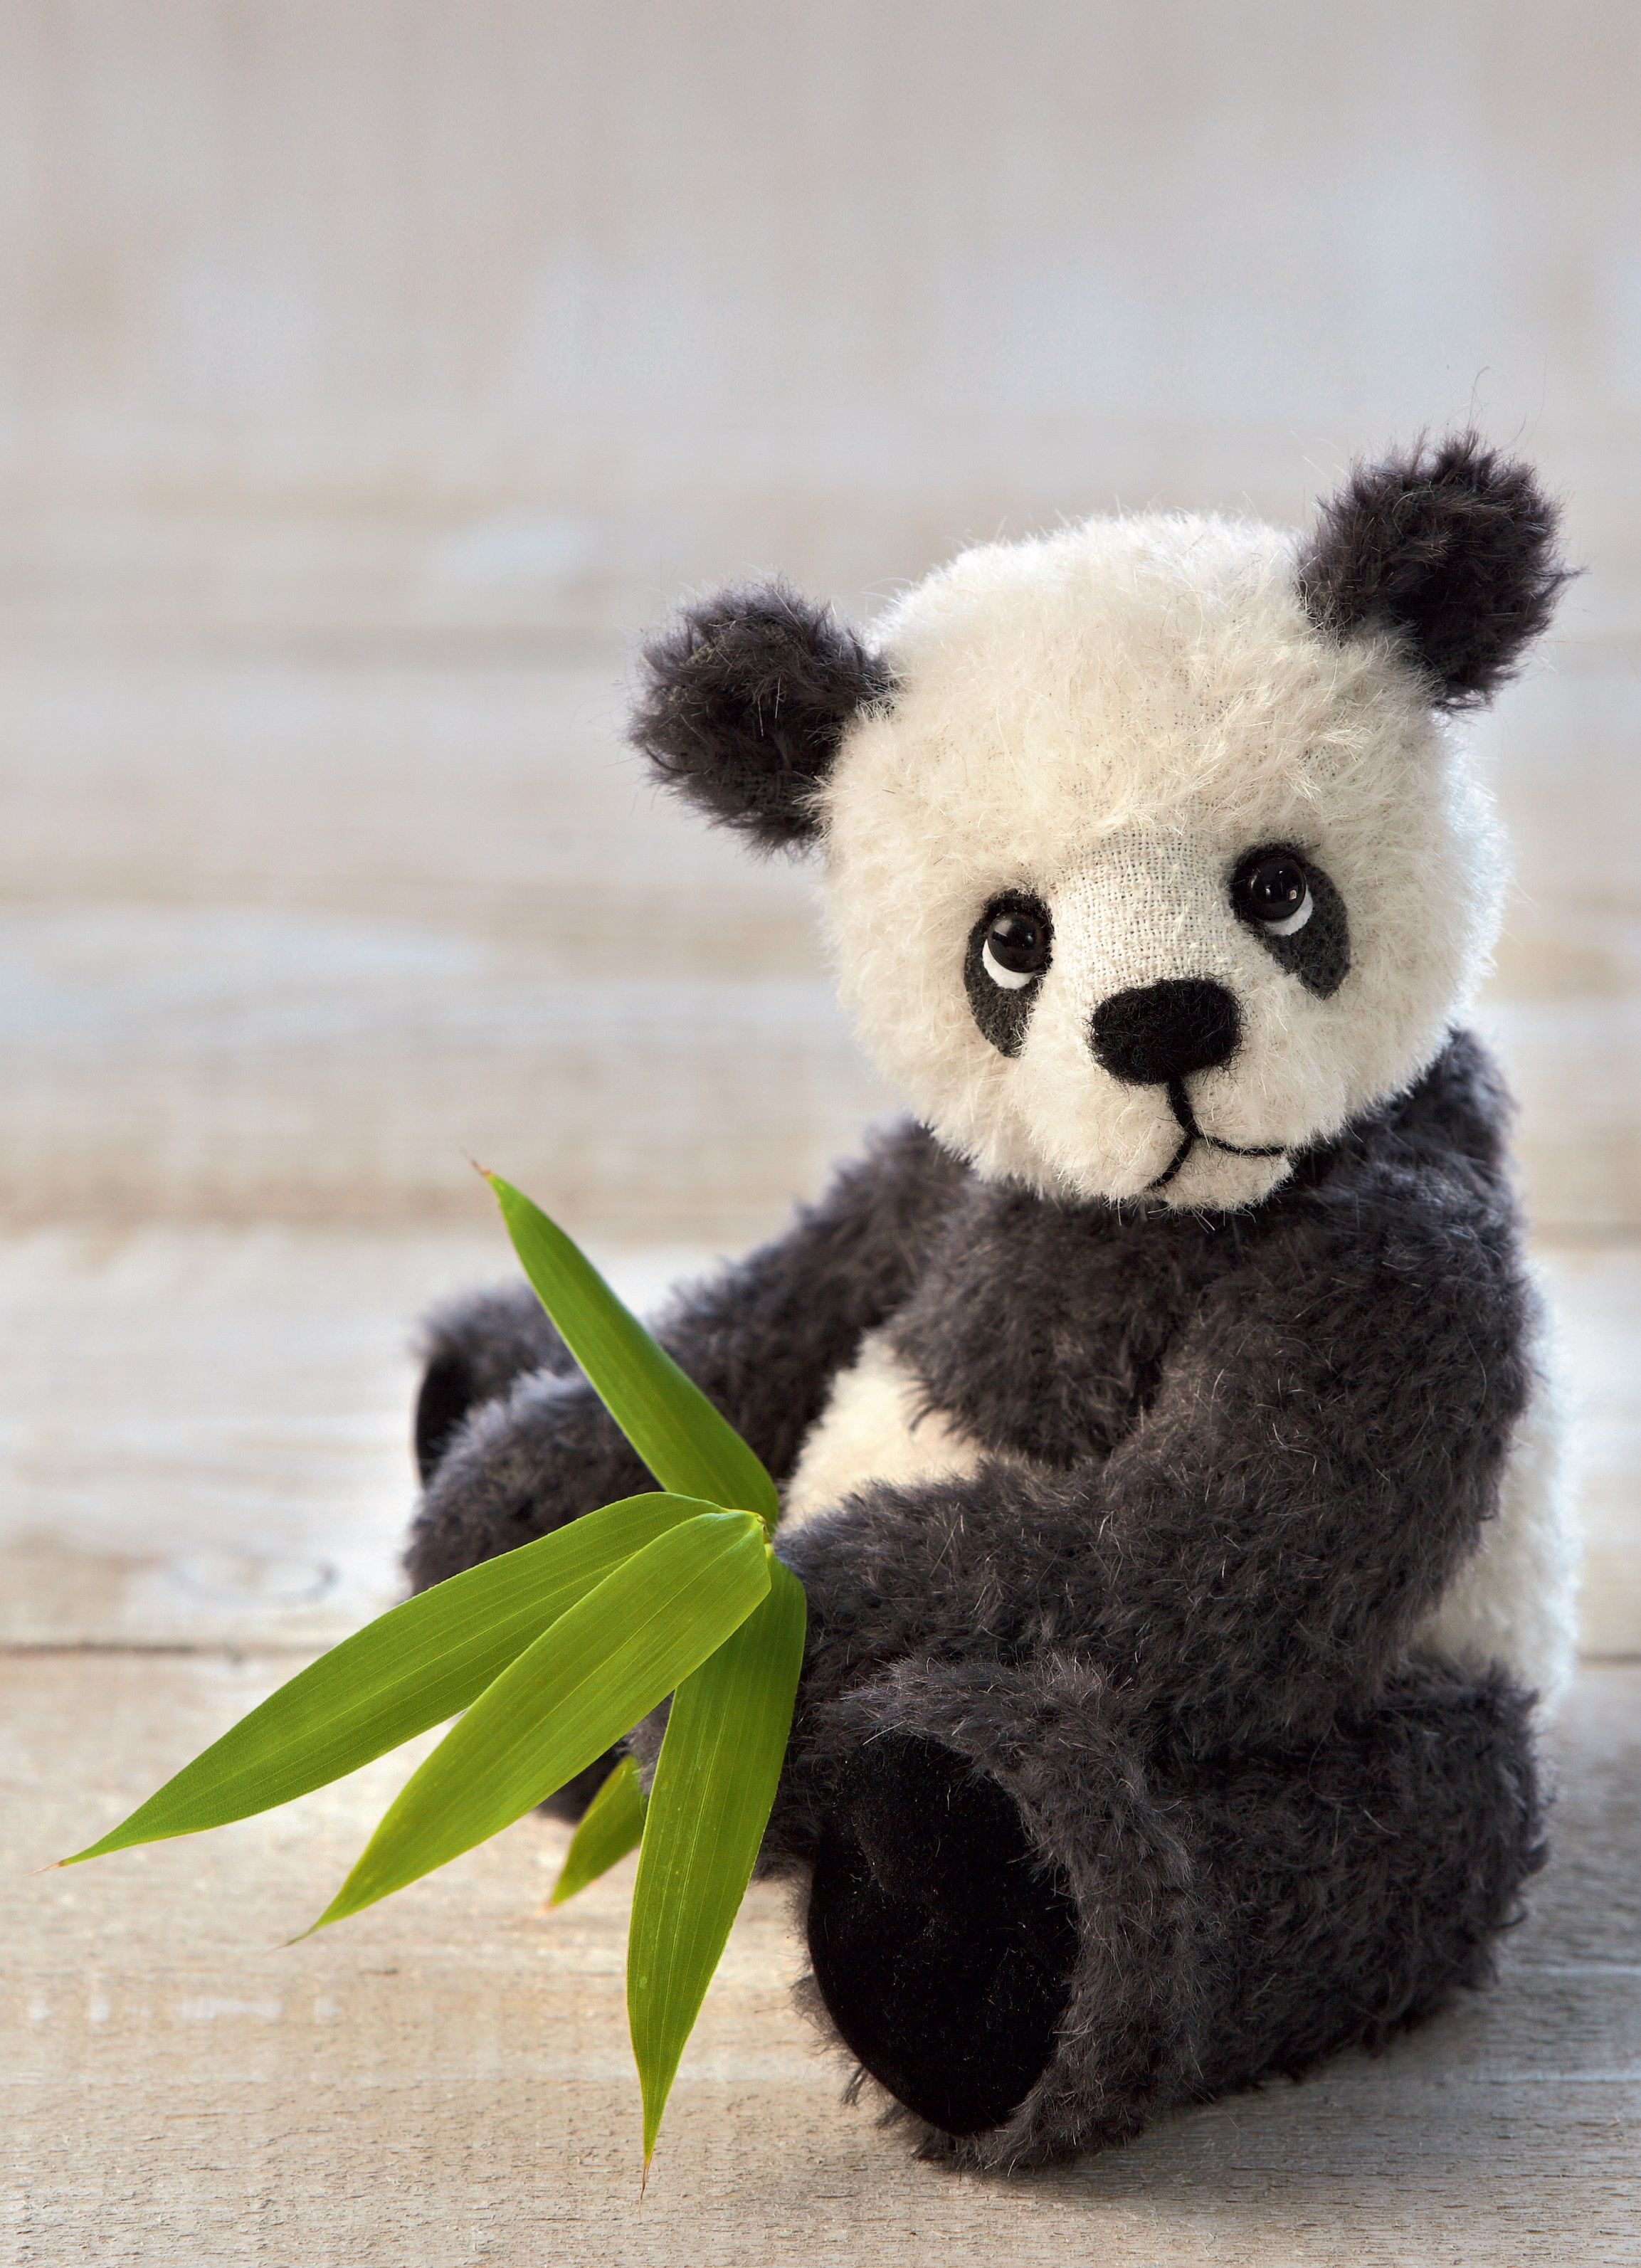 Ping The Panda - Magazine Templates | Soft sculptures and soft toys ...